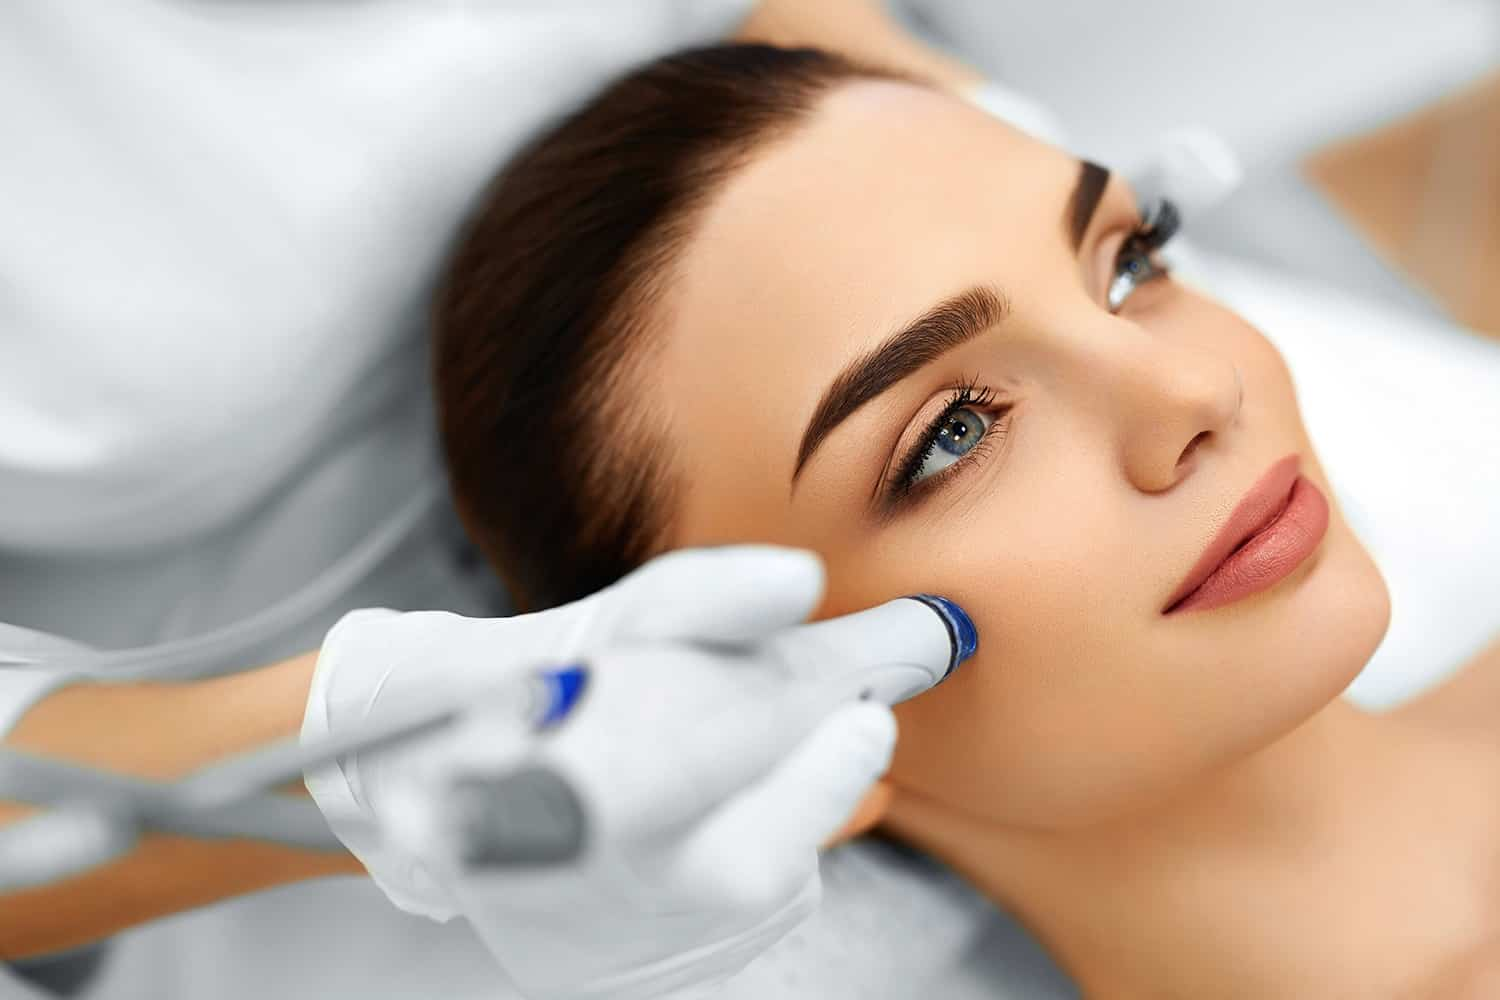 hydrafacial md at nova plastic surgery and medspa hydrating skin treatment